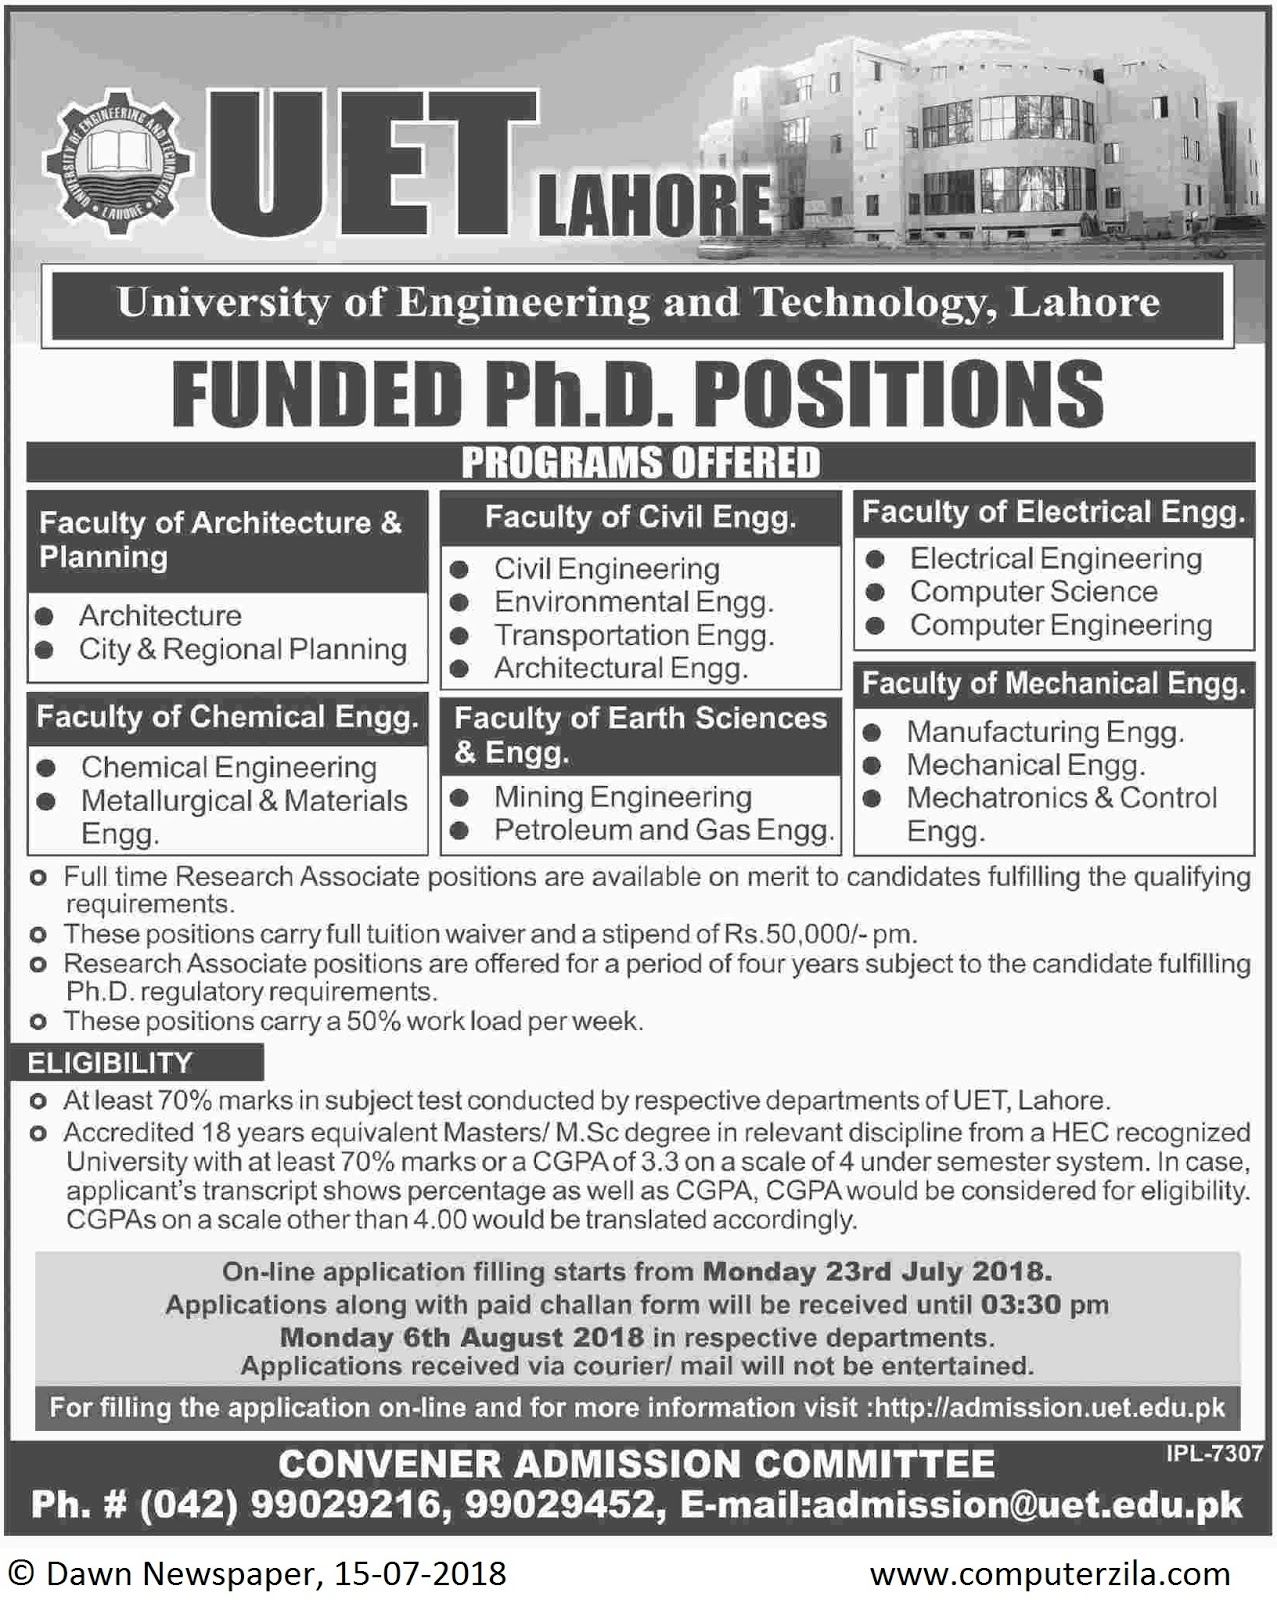 Admissions Open For Fall 2018 At UET Lahore Campus